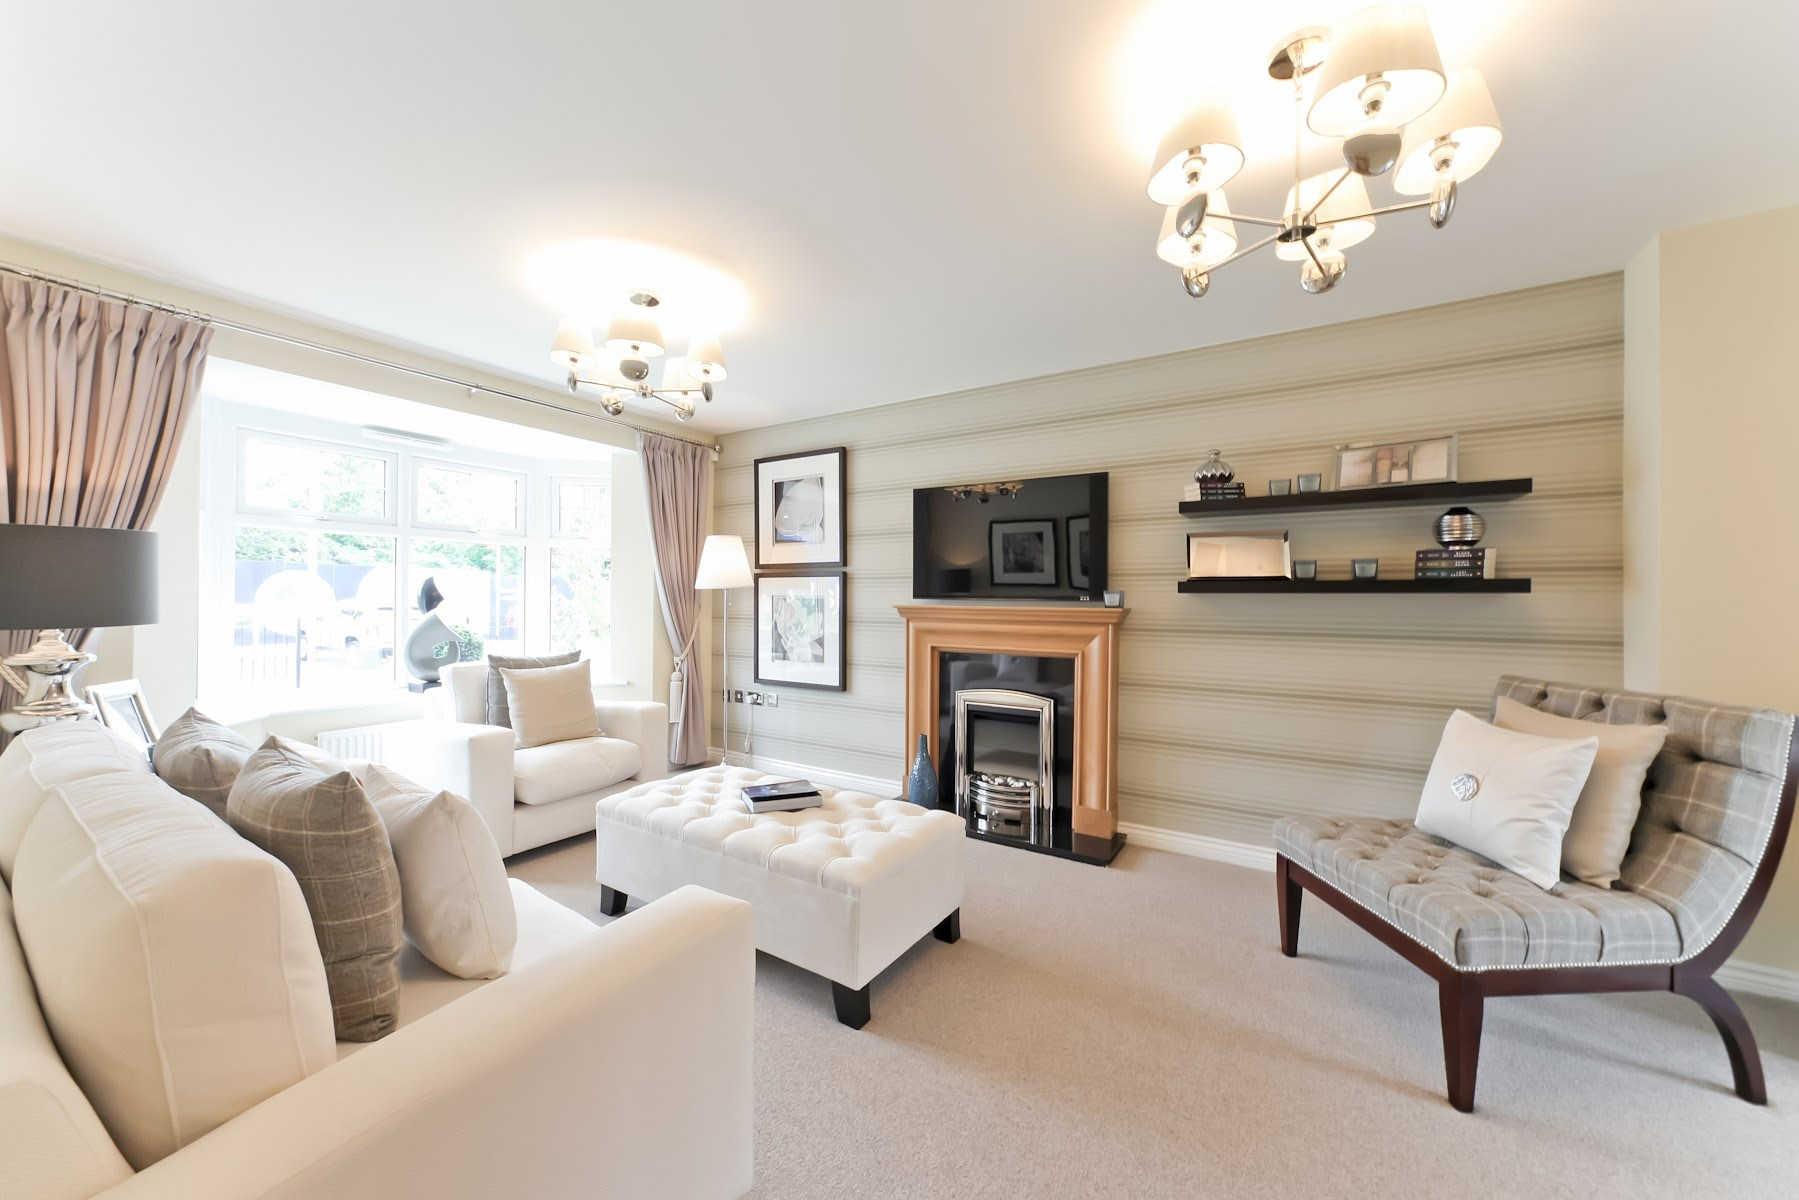 005_BH_Downham_Living_Room